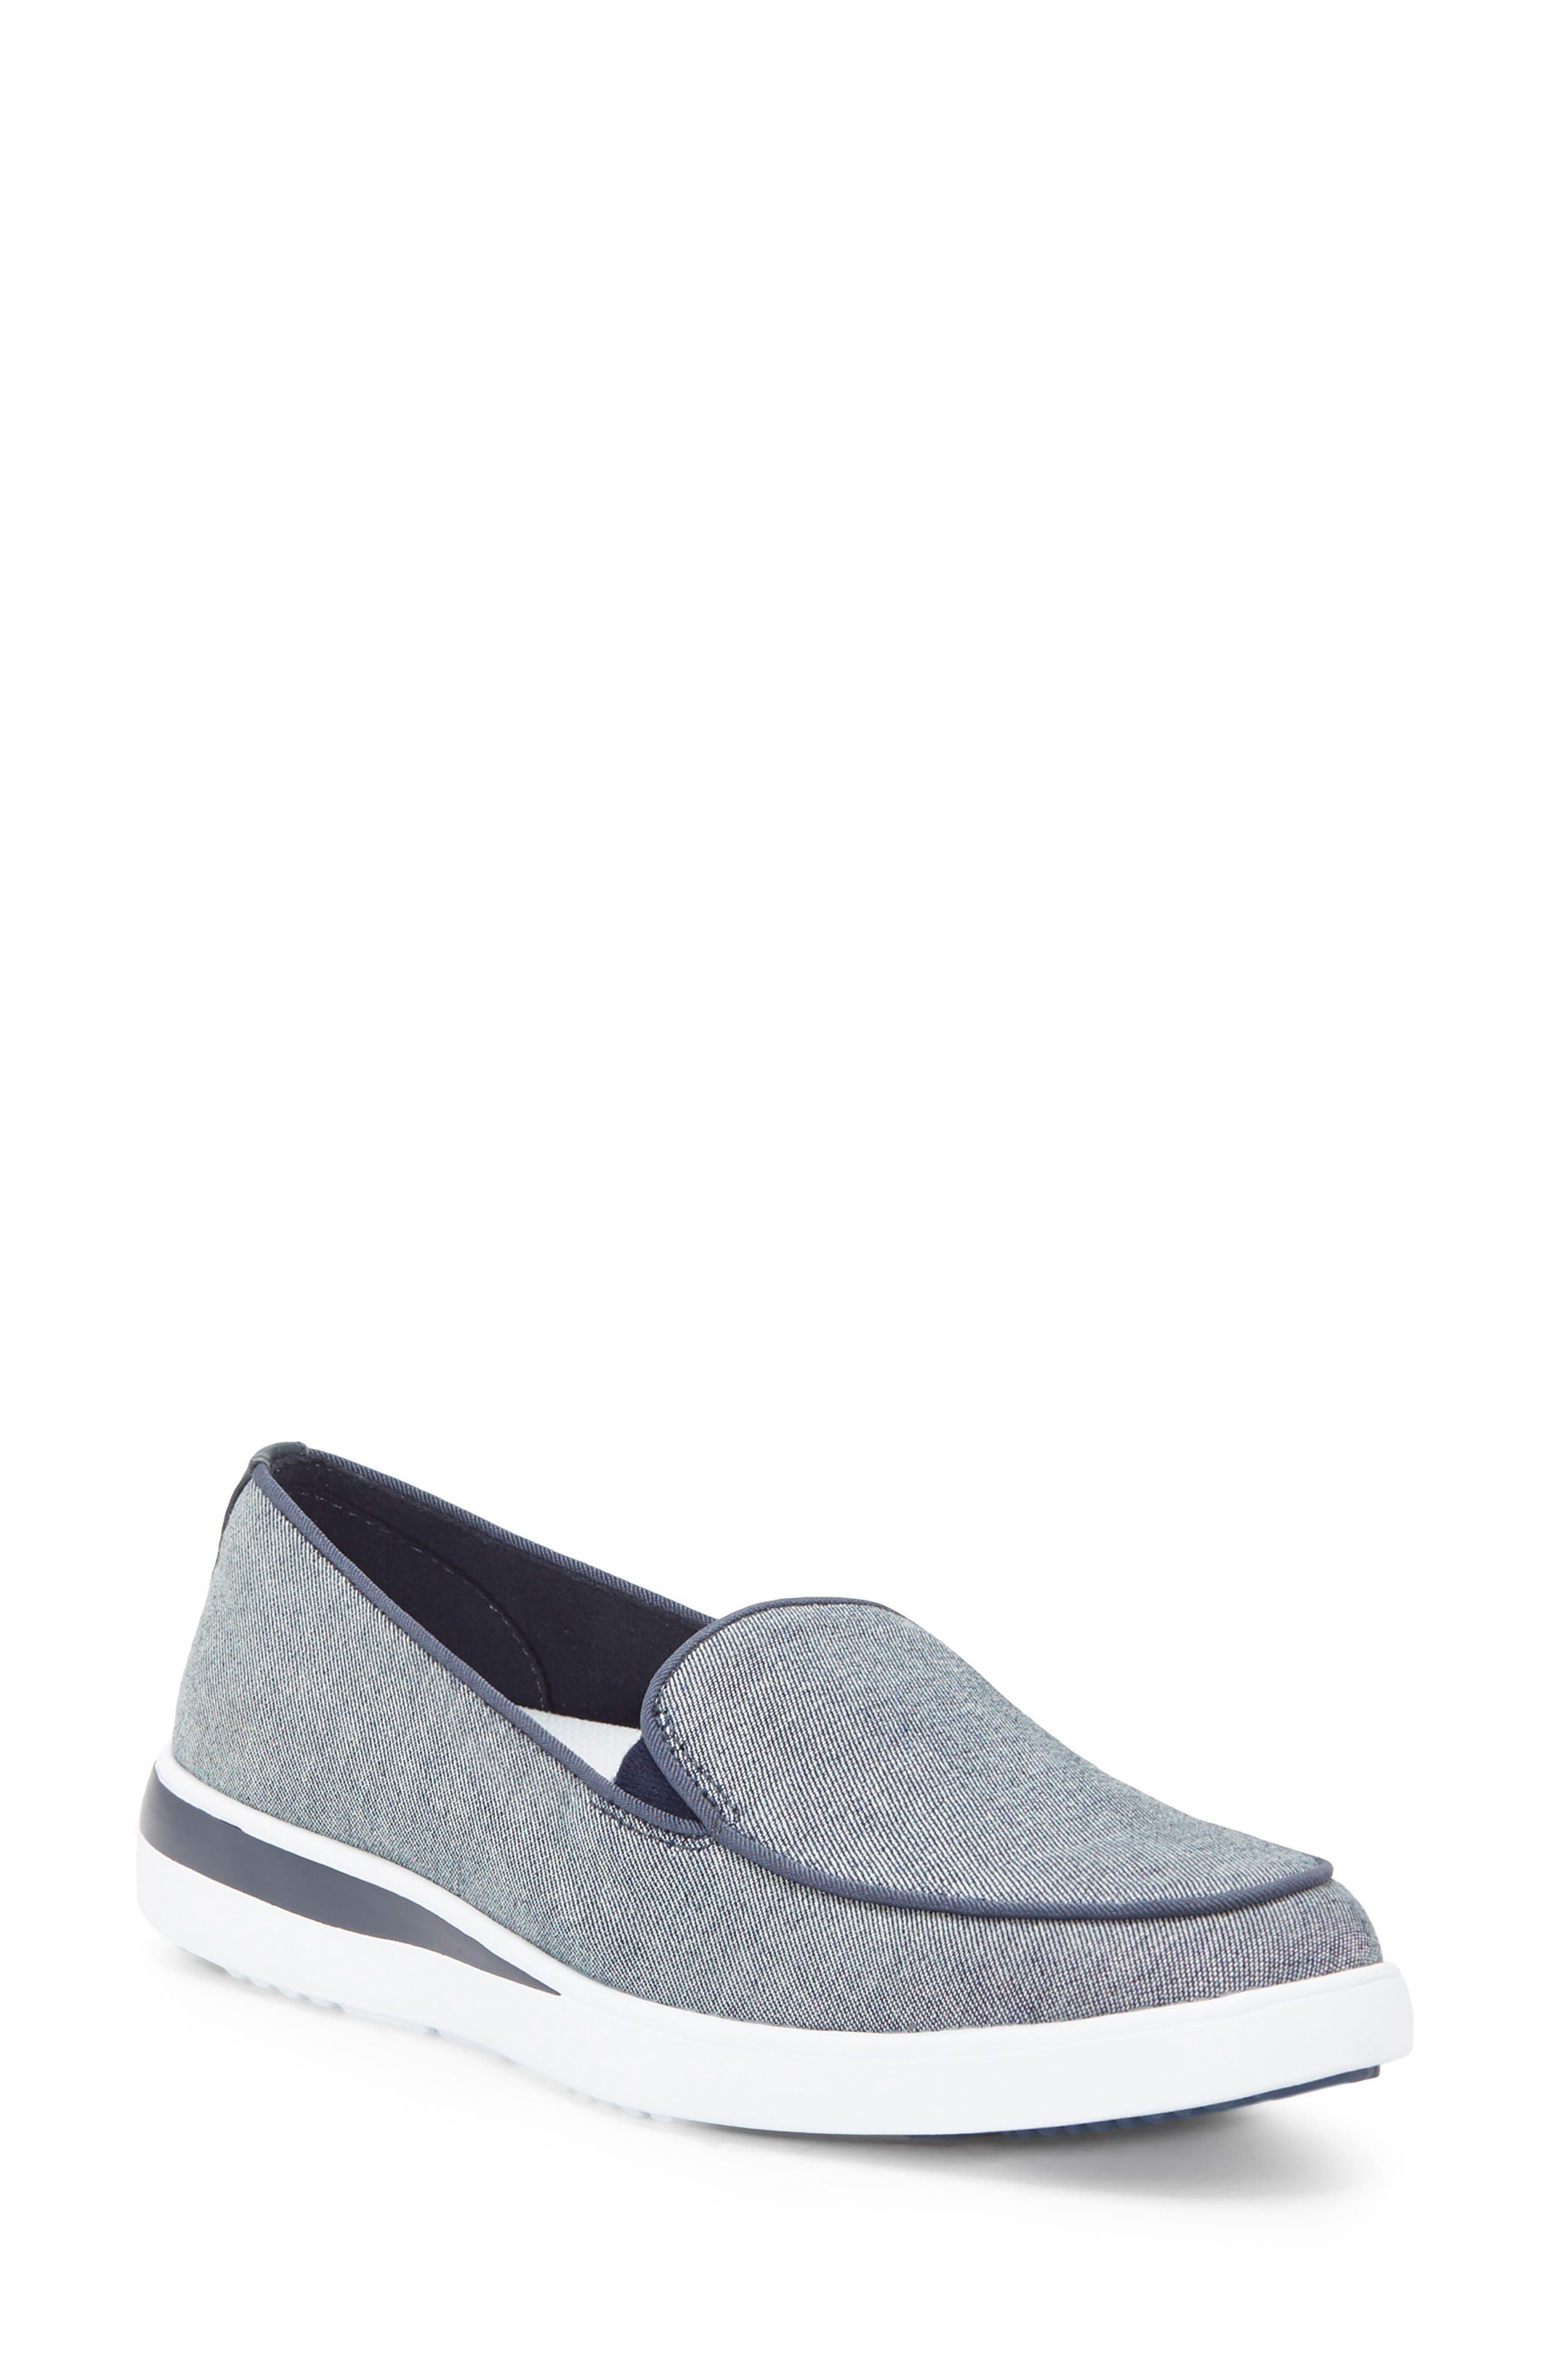 Antona Slip-On Sneaker,                             Main thumbnail 1, color,                             Blue Fabric